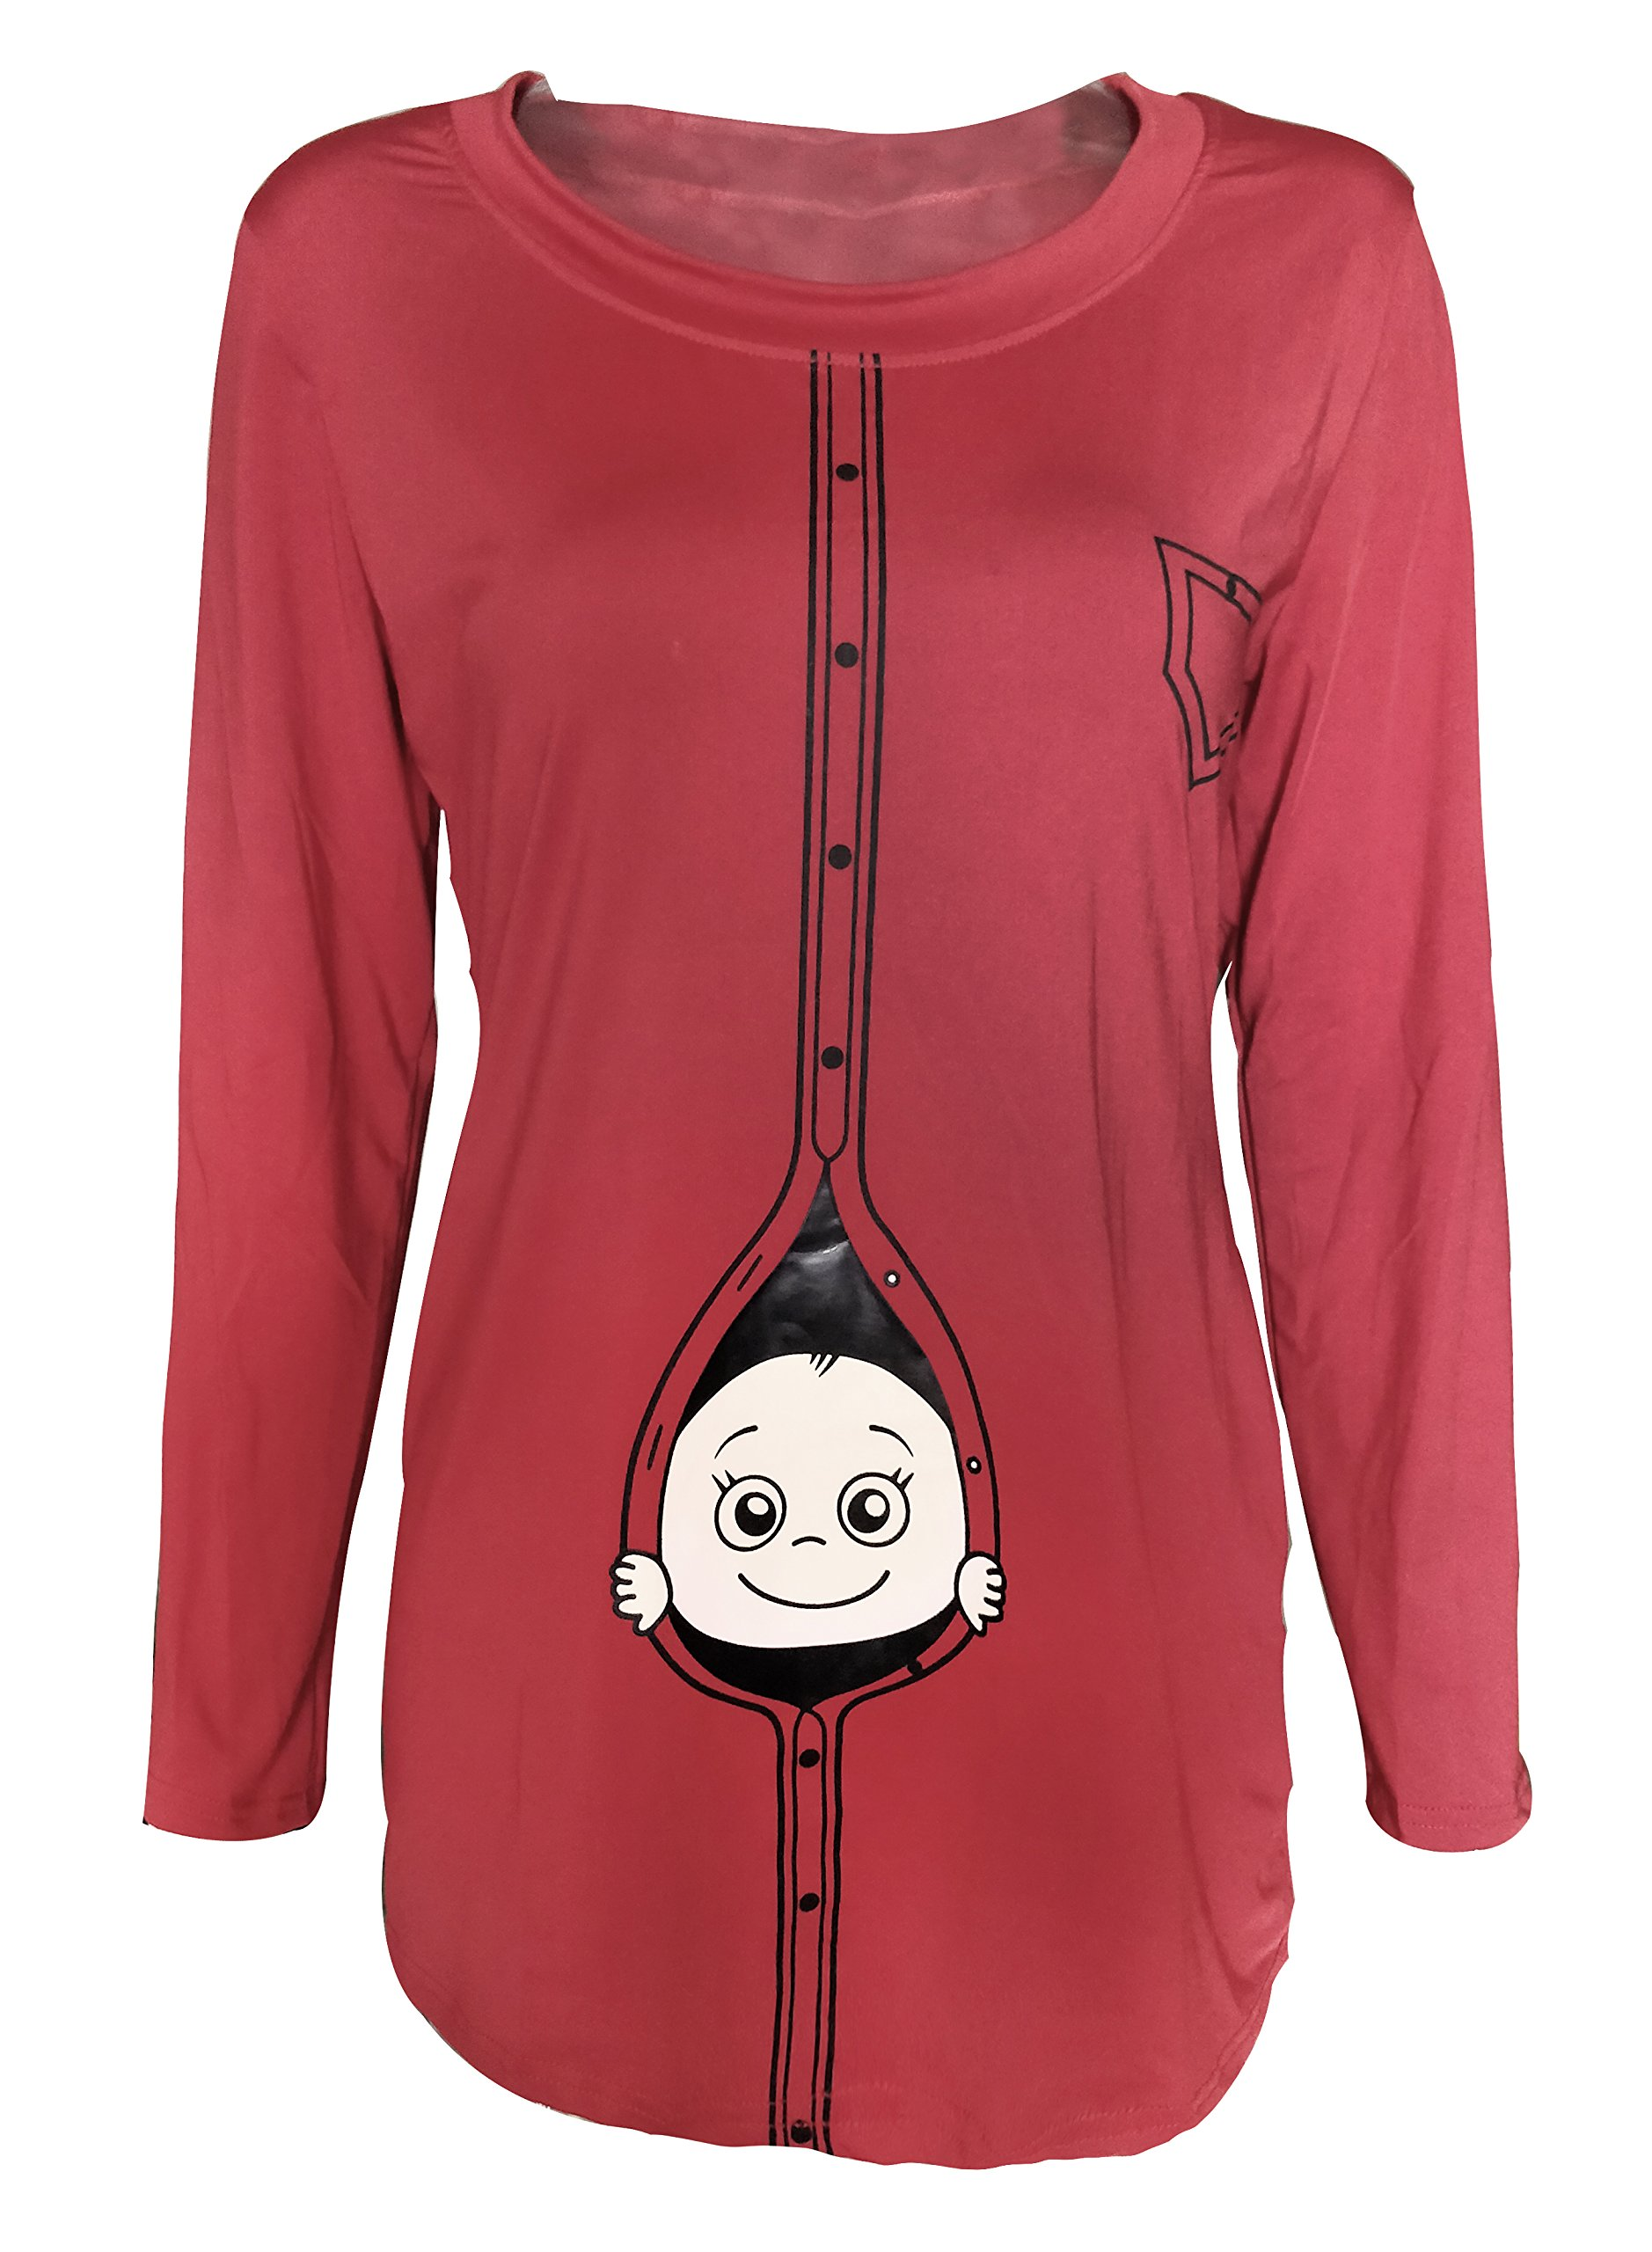 Amazing Speed Women Christmas Plus Size Funny Baby Maternity Shirts Pregnant Top Blouse (XXL, Red)